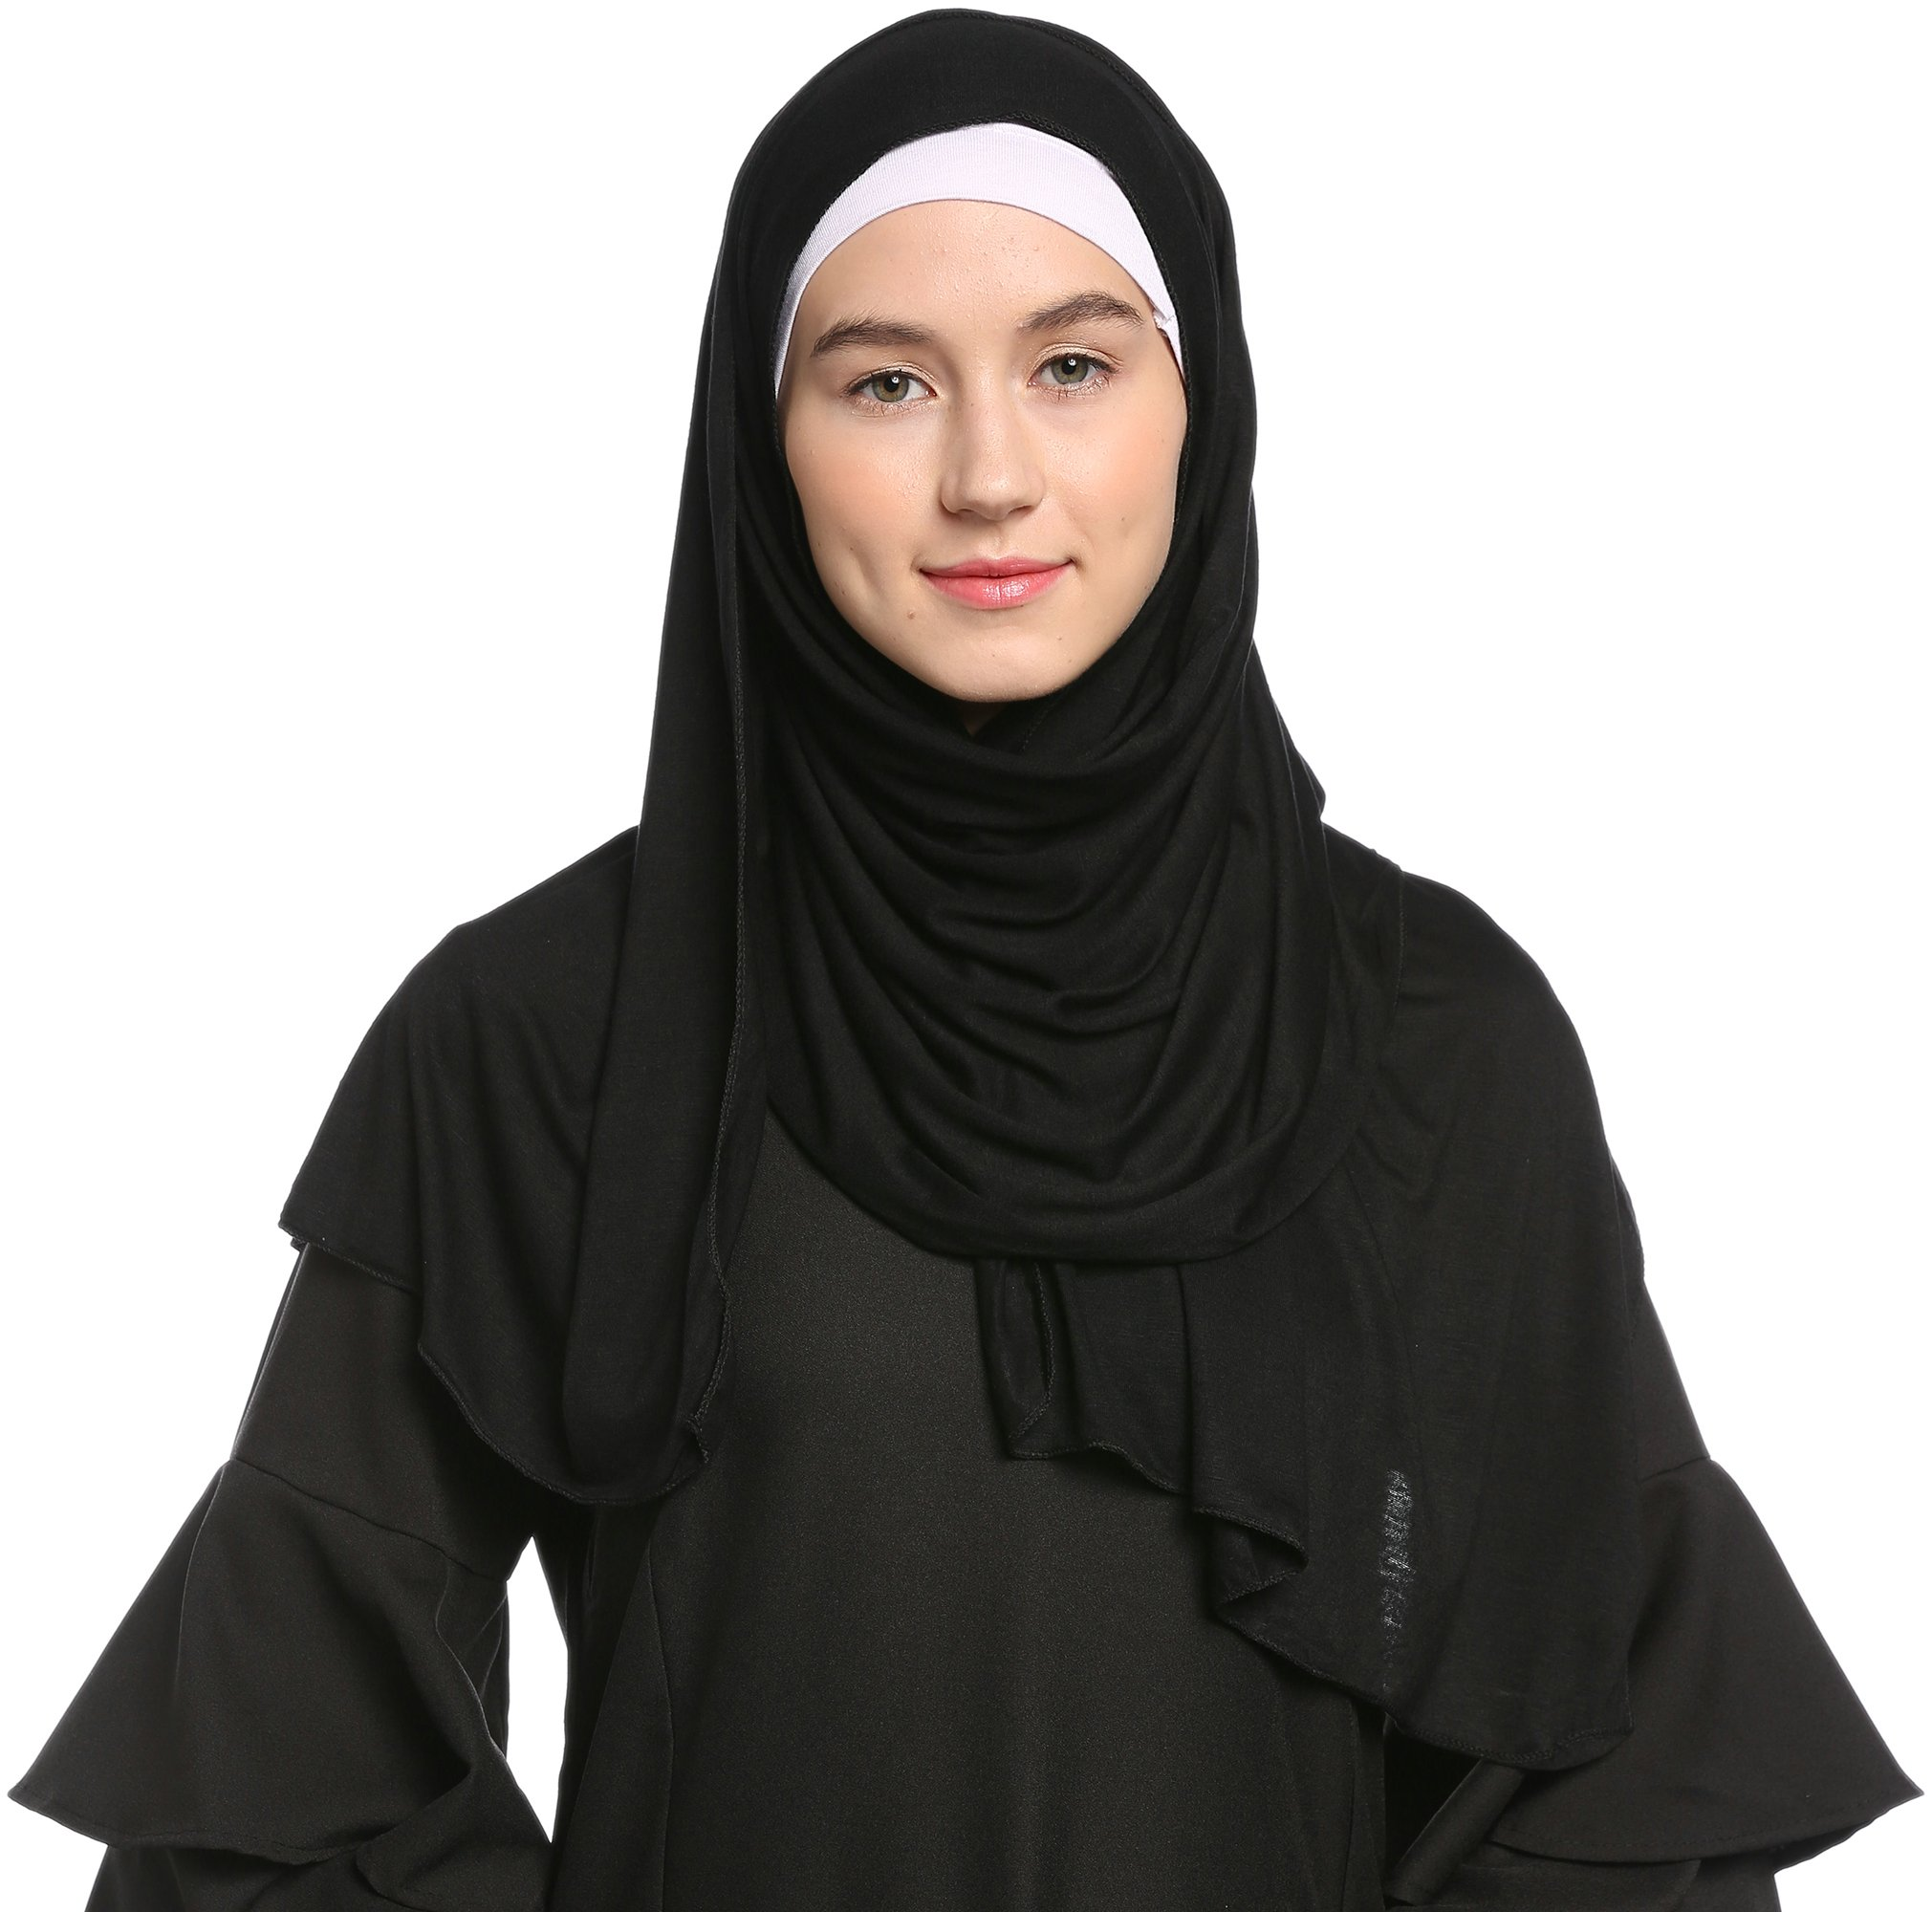 Ababalaya Fashion Womens Lightweight 100%Cotton Jersey Hijab Scarf, Black, One Size